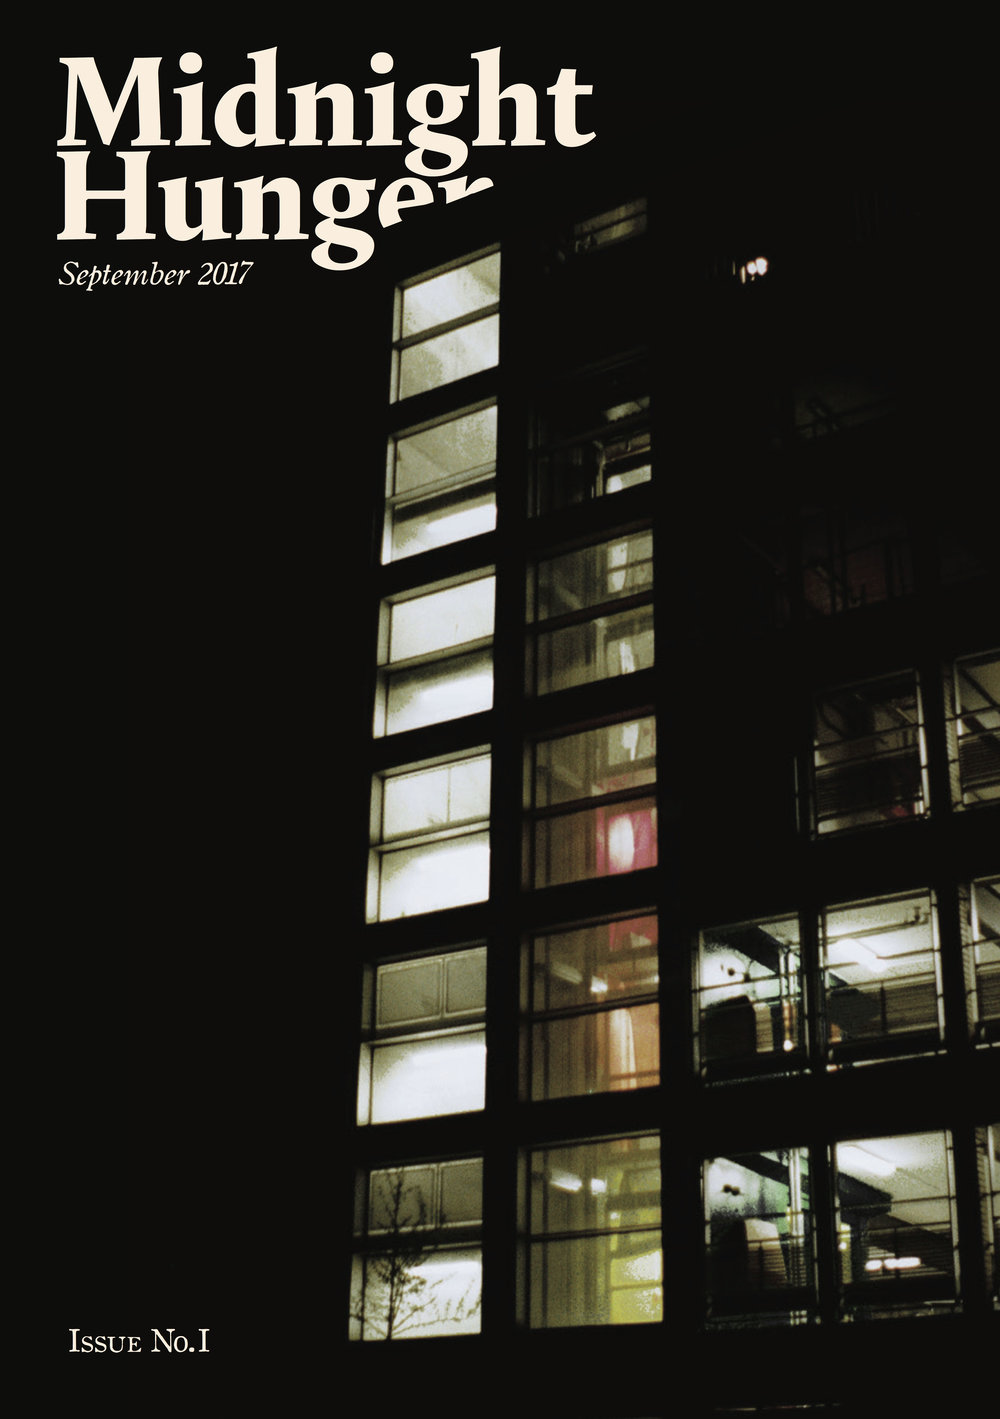 Midnight Hungera comprehensive study on the urban living condition and the psychological impact on its inhabitants - Contributors:Jay BawarRuohui ChenAndreea SofinetiPhilip BasaricQiaoer JinXizi LuoXuningg Zhou& Alexander SiCurated & Edited by Alexander SiPDF DownloadOr Purchase the Physical CopySeptember, 2017